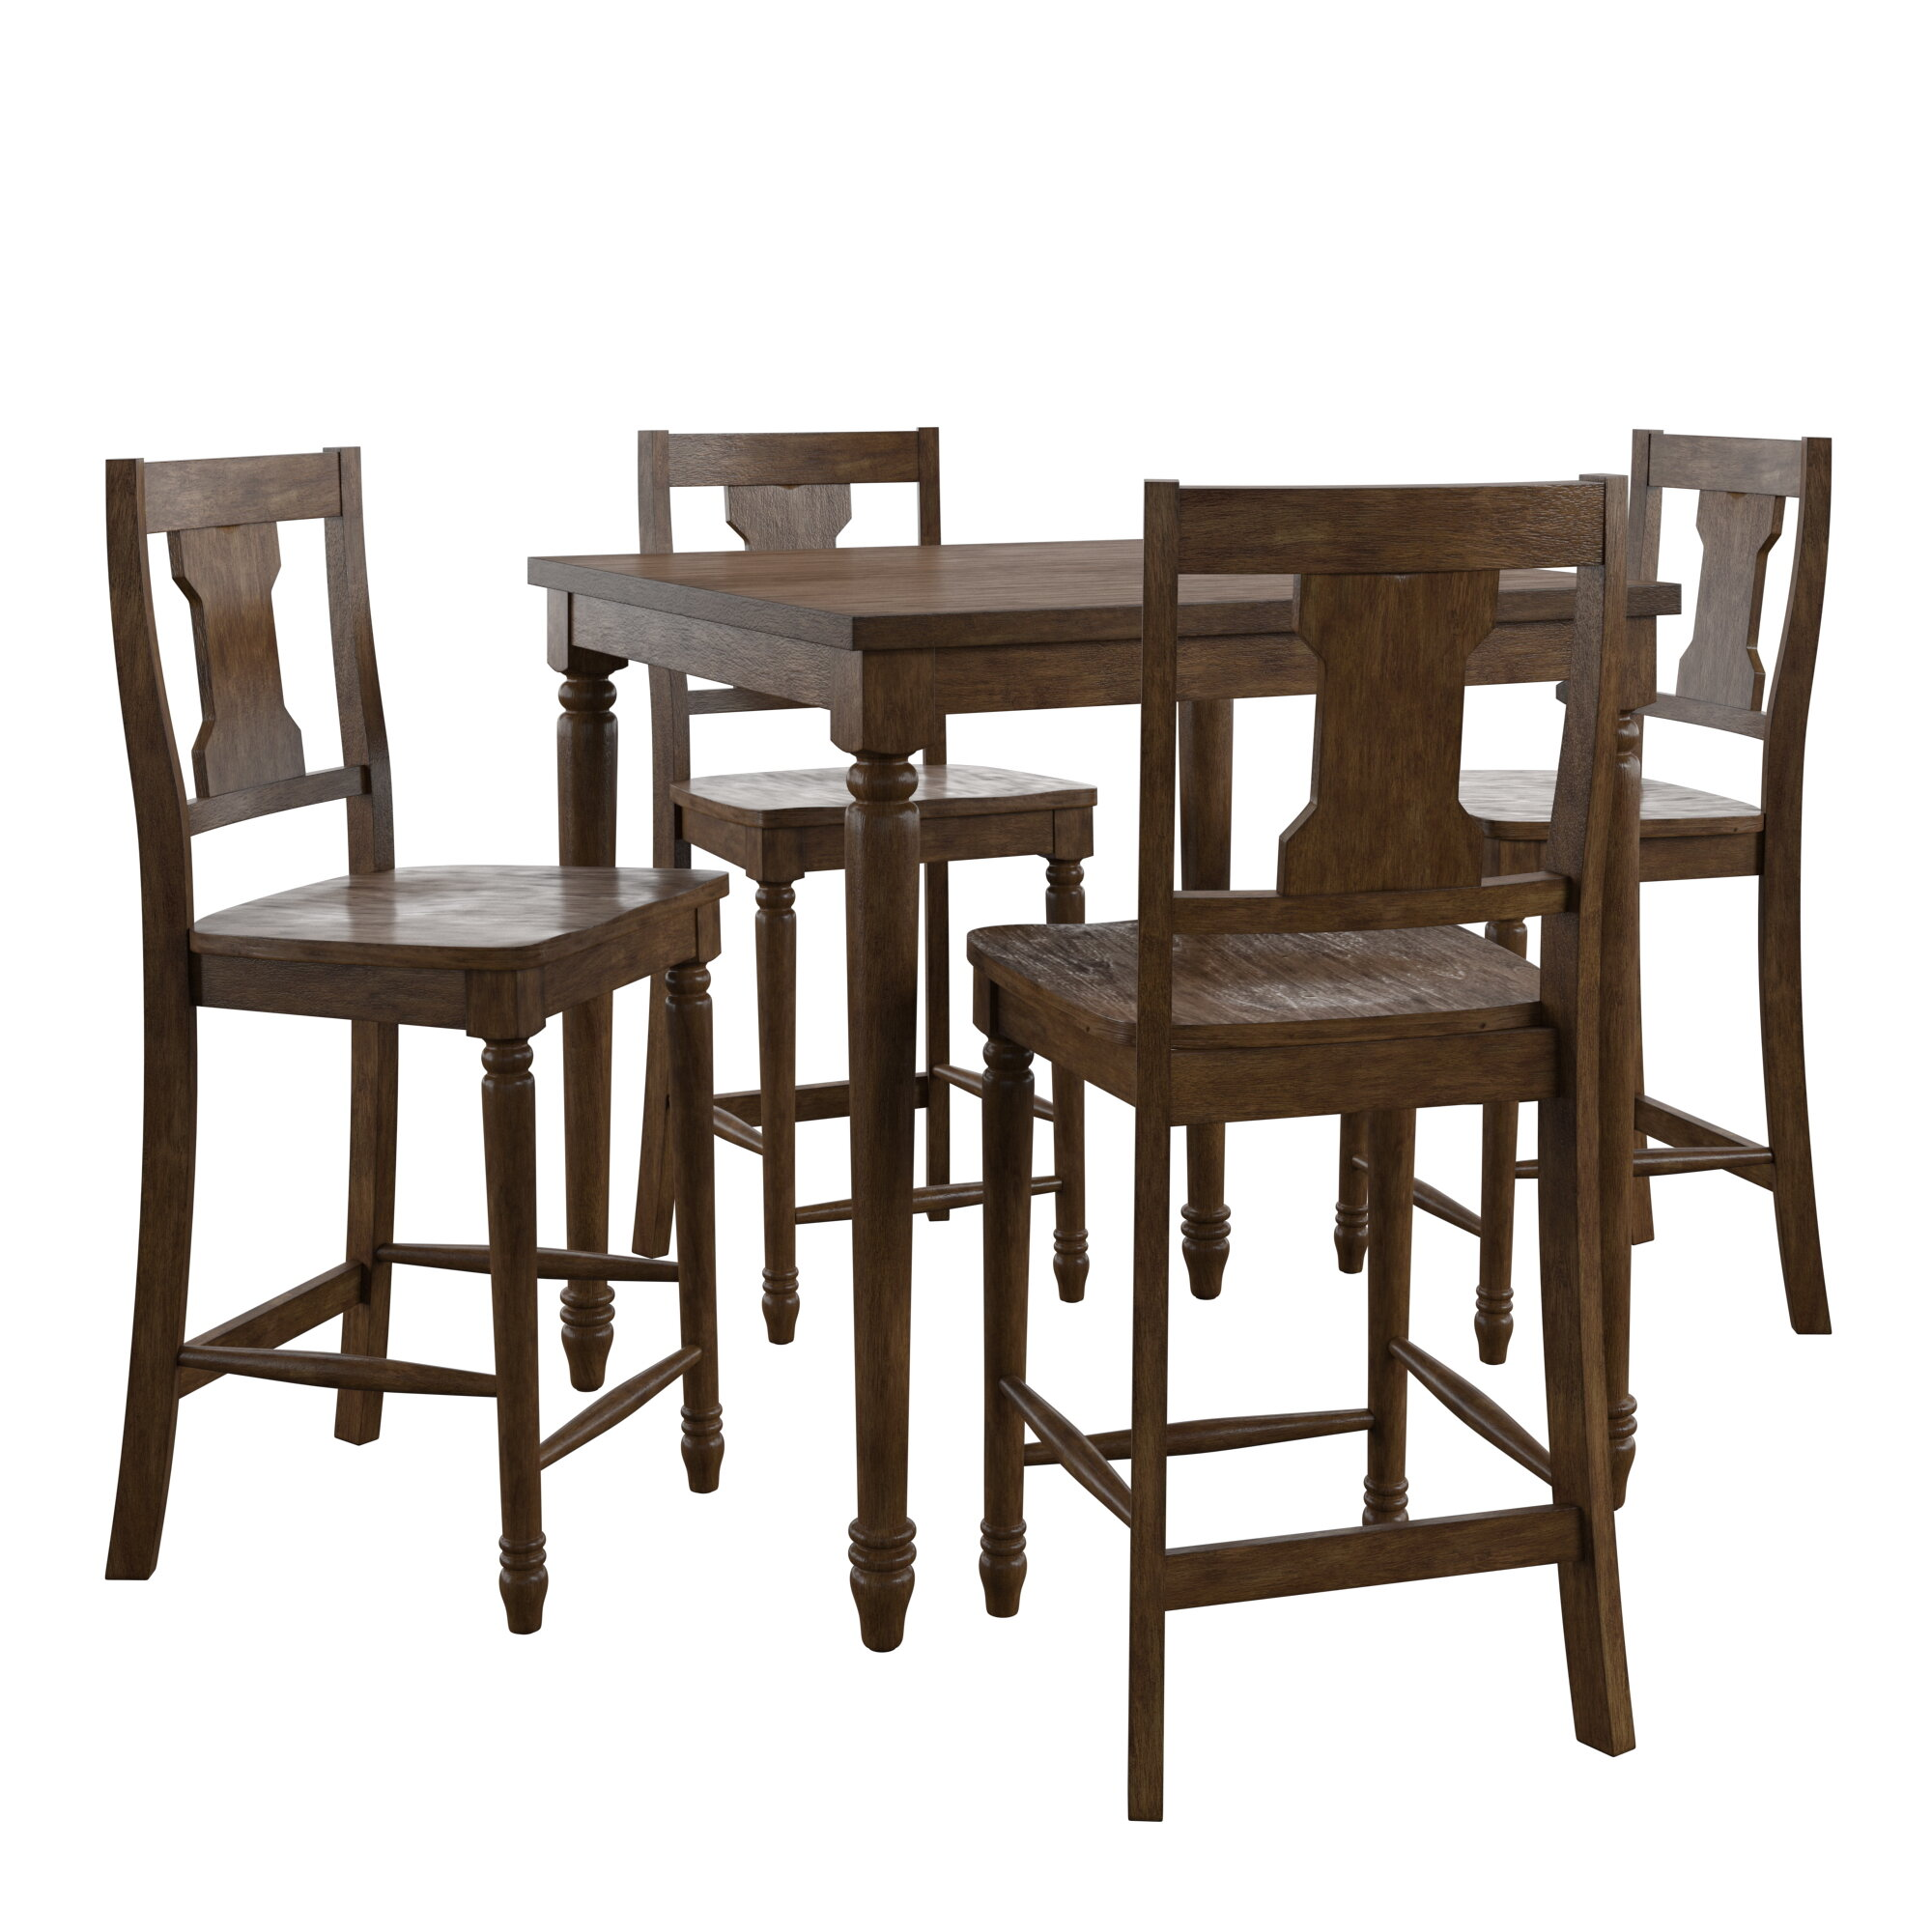 Merveilleux Petrucci Reclaimed Wood 5 Piece Pub Table Set